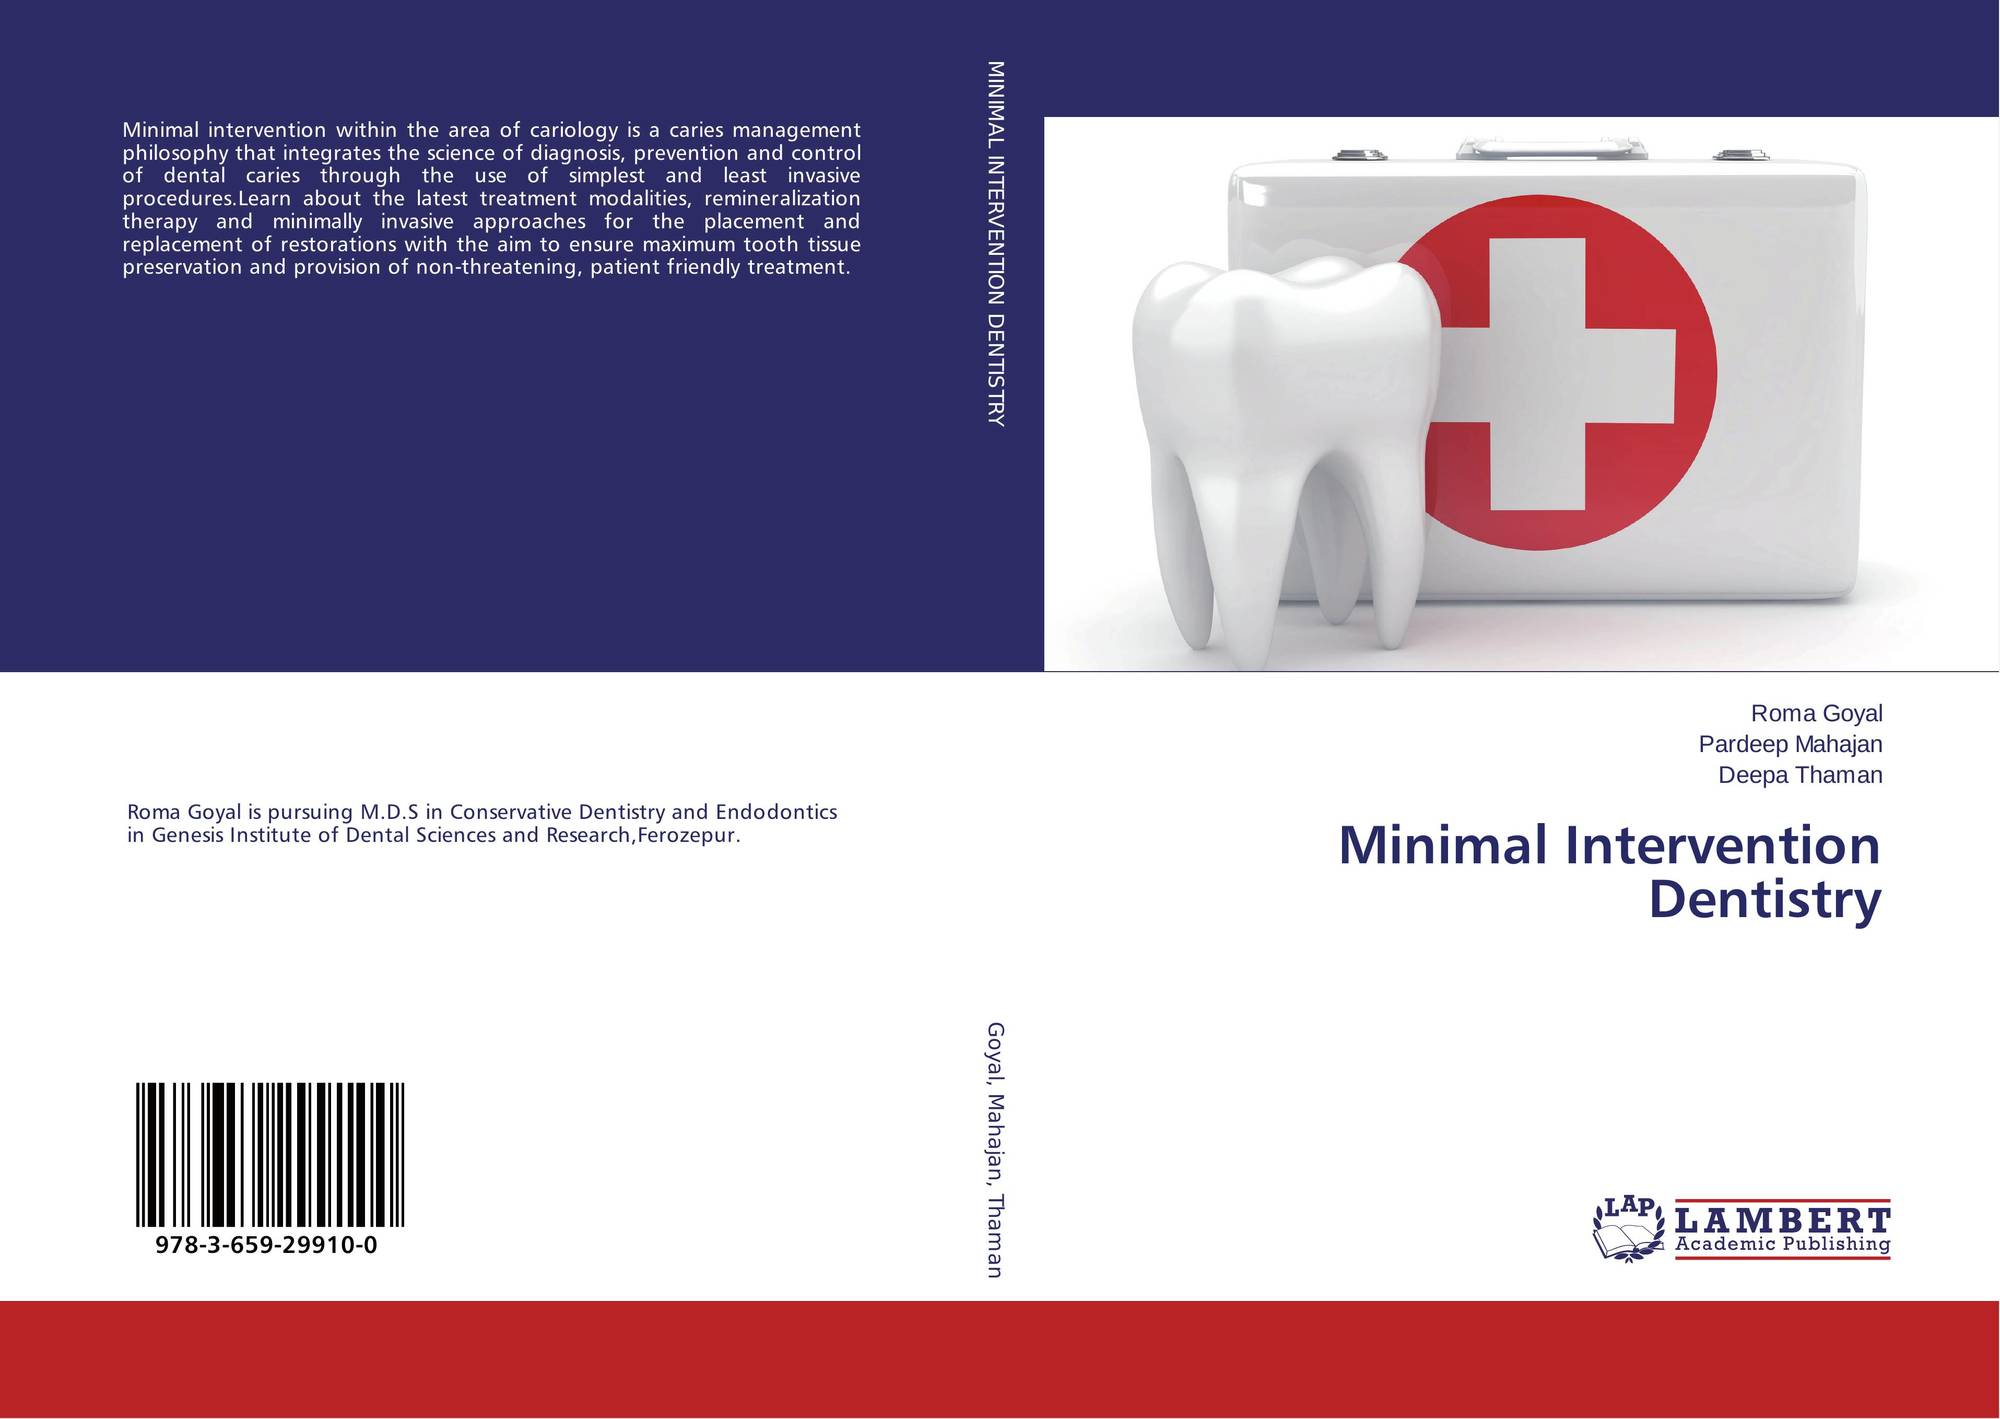 minimal intervention dentistry We are really excited about this new movement within the dental field of minimal intervention dentistry and have embraced it into the practice.